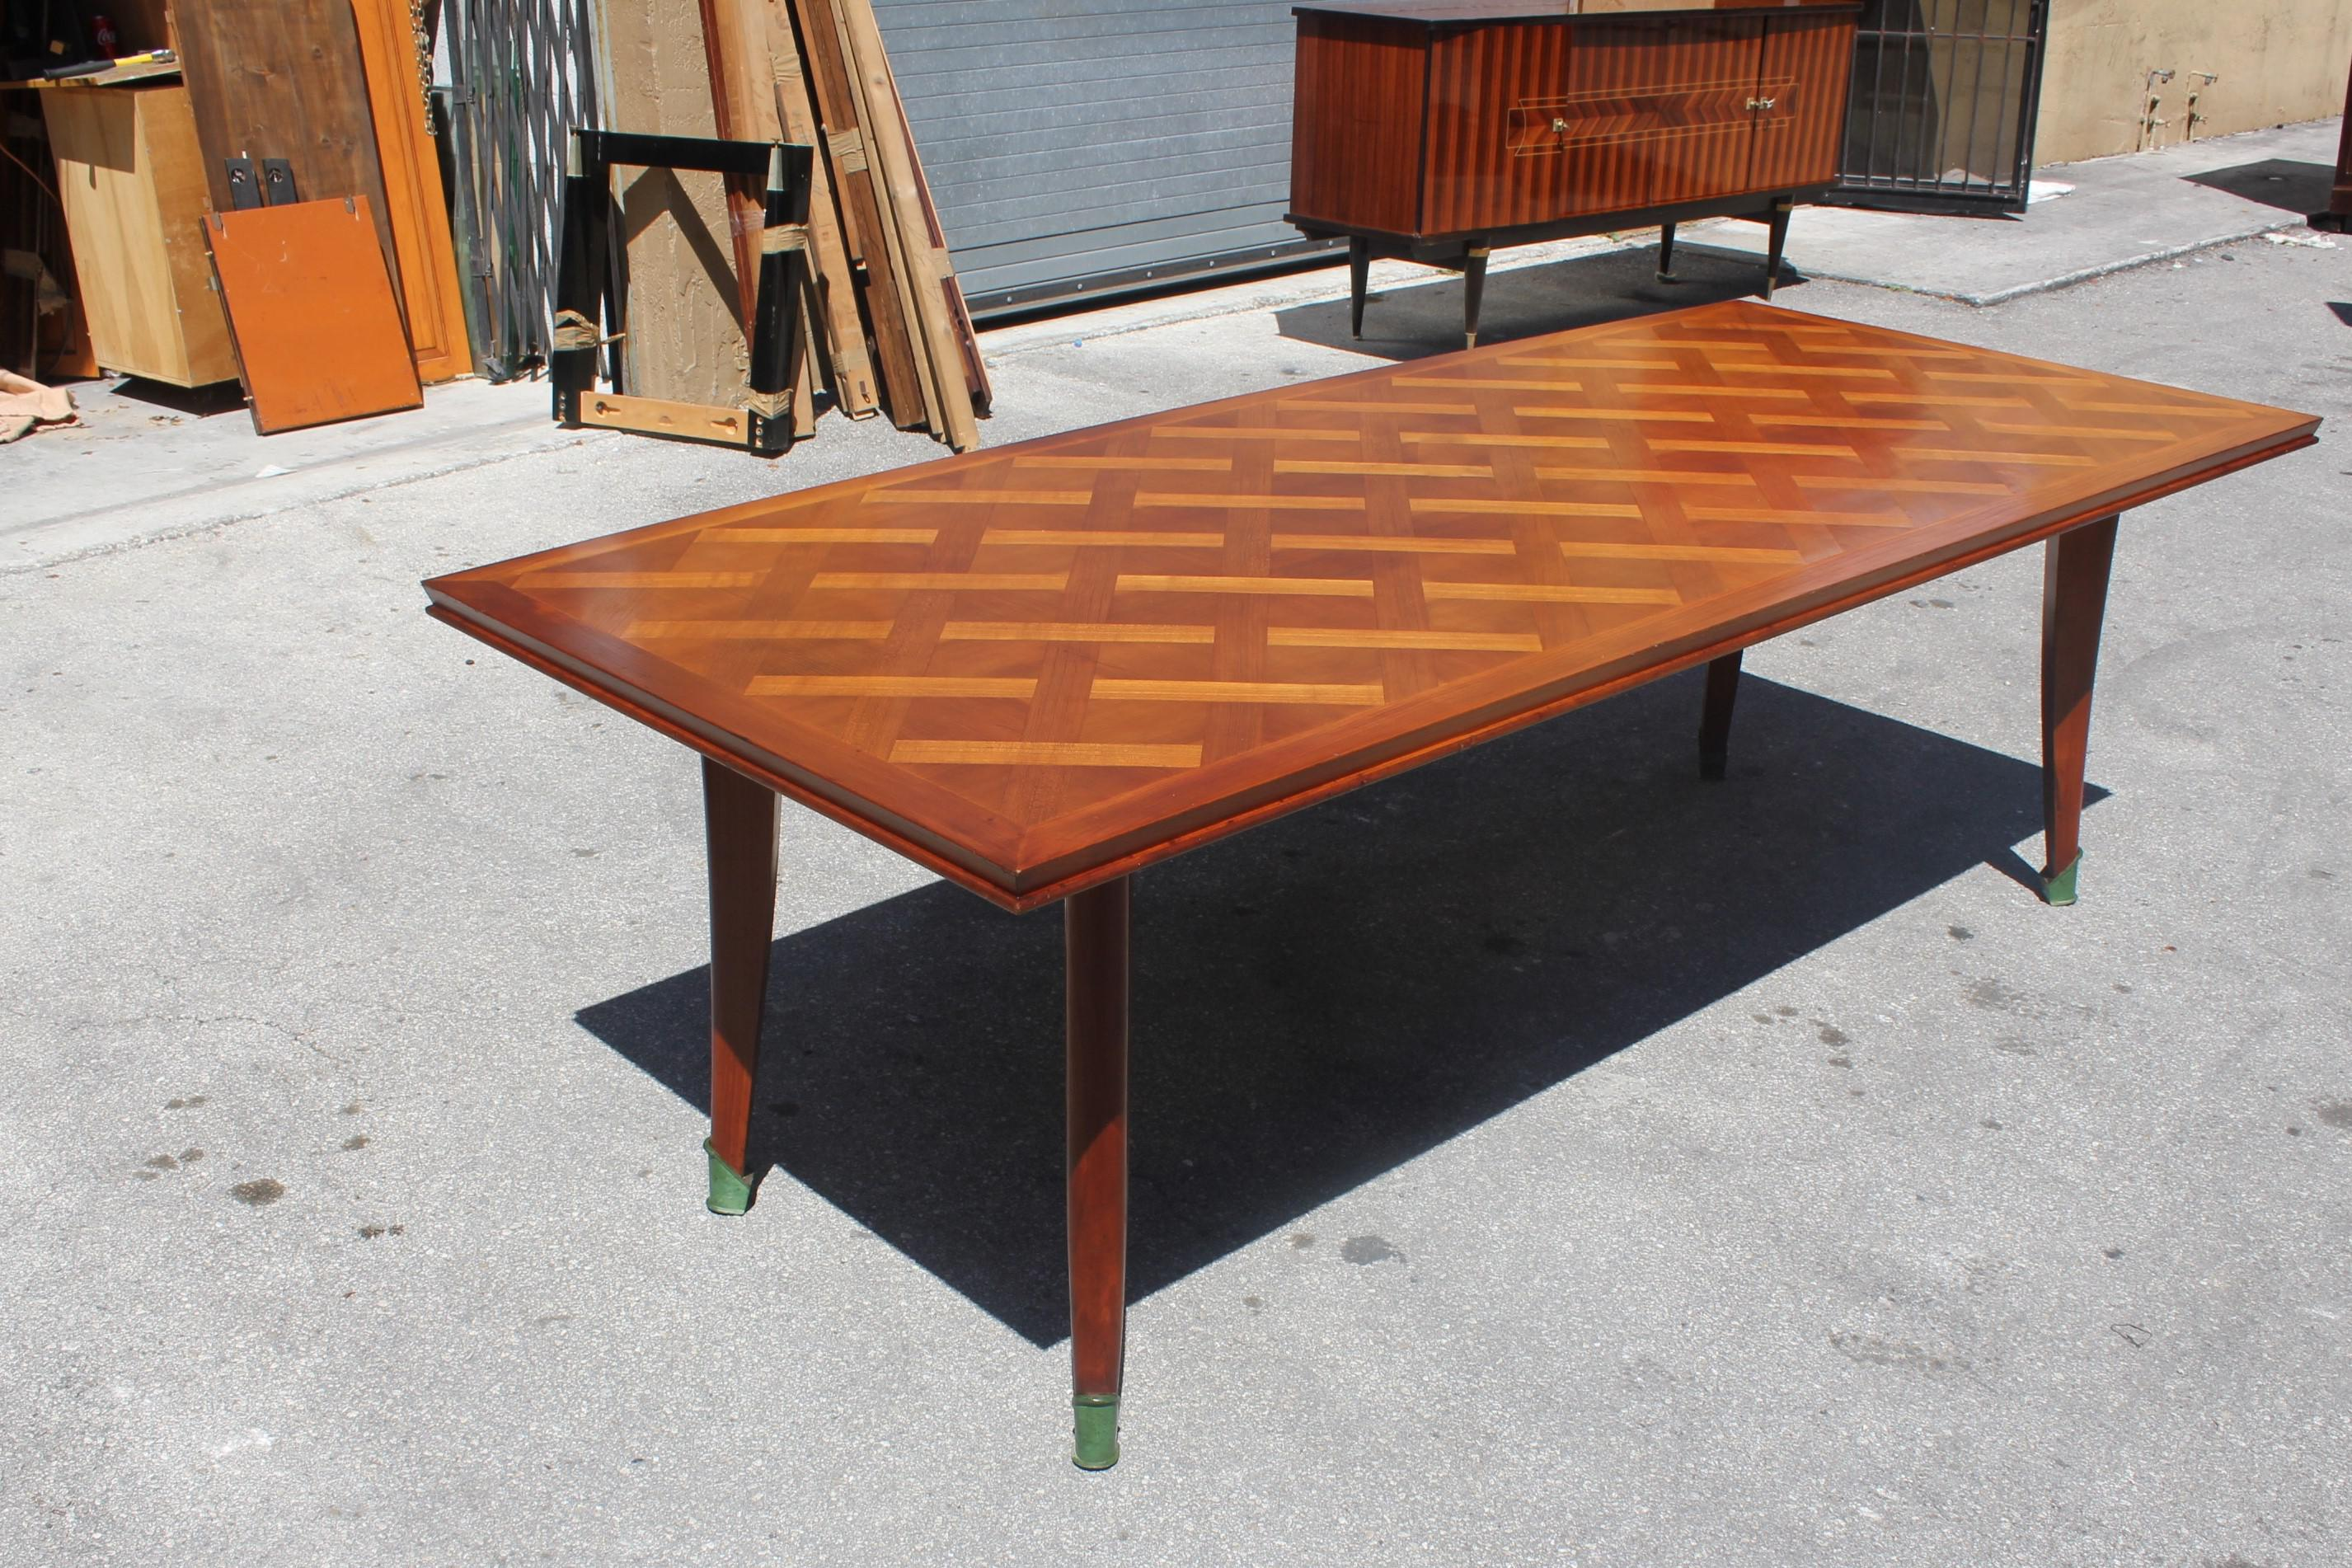 Master Piece French Art Deco Dining Table Cherry Wood By Leon Jallot 1930s  For Sale